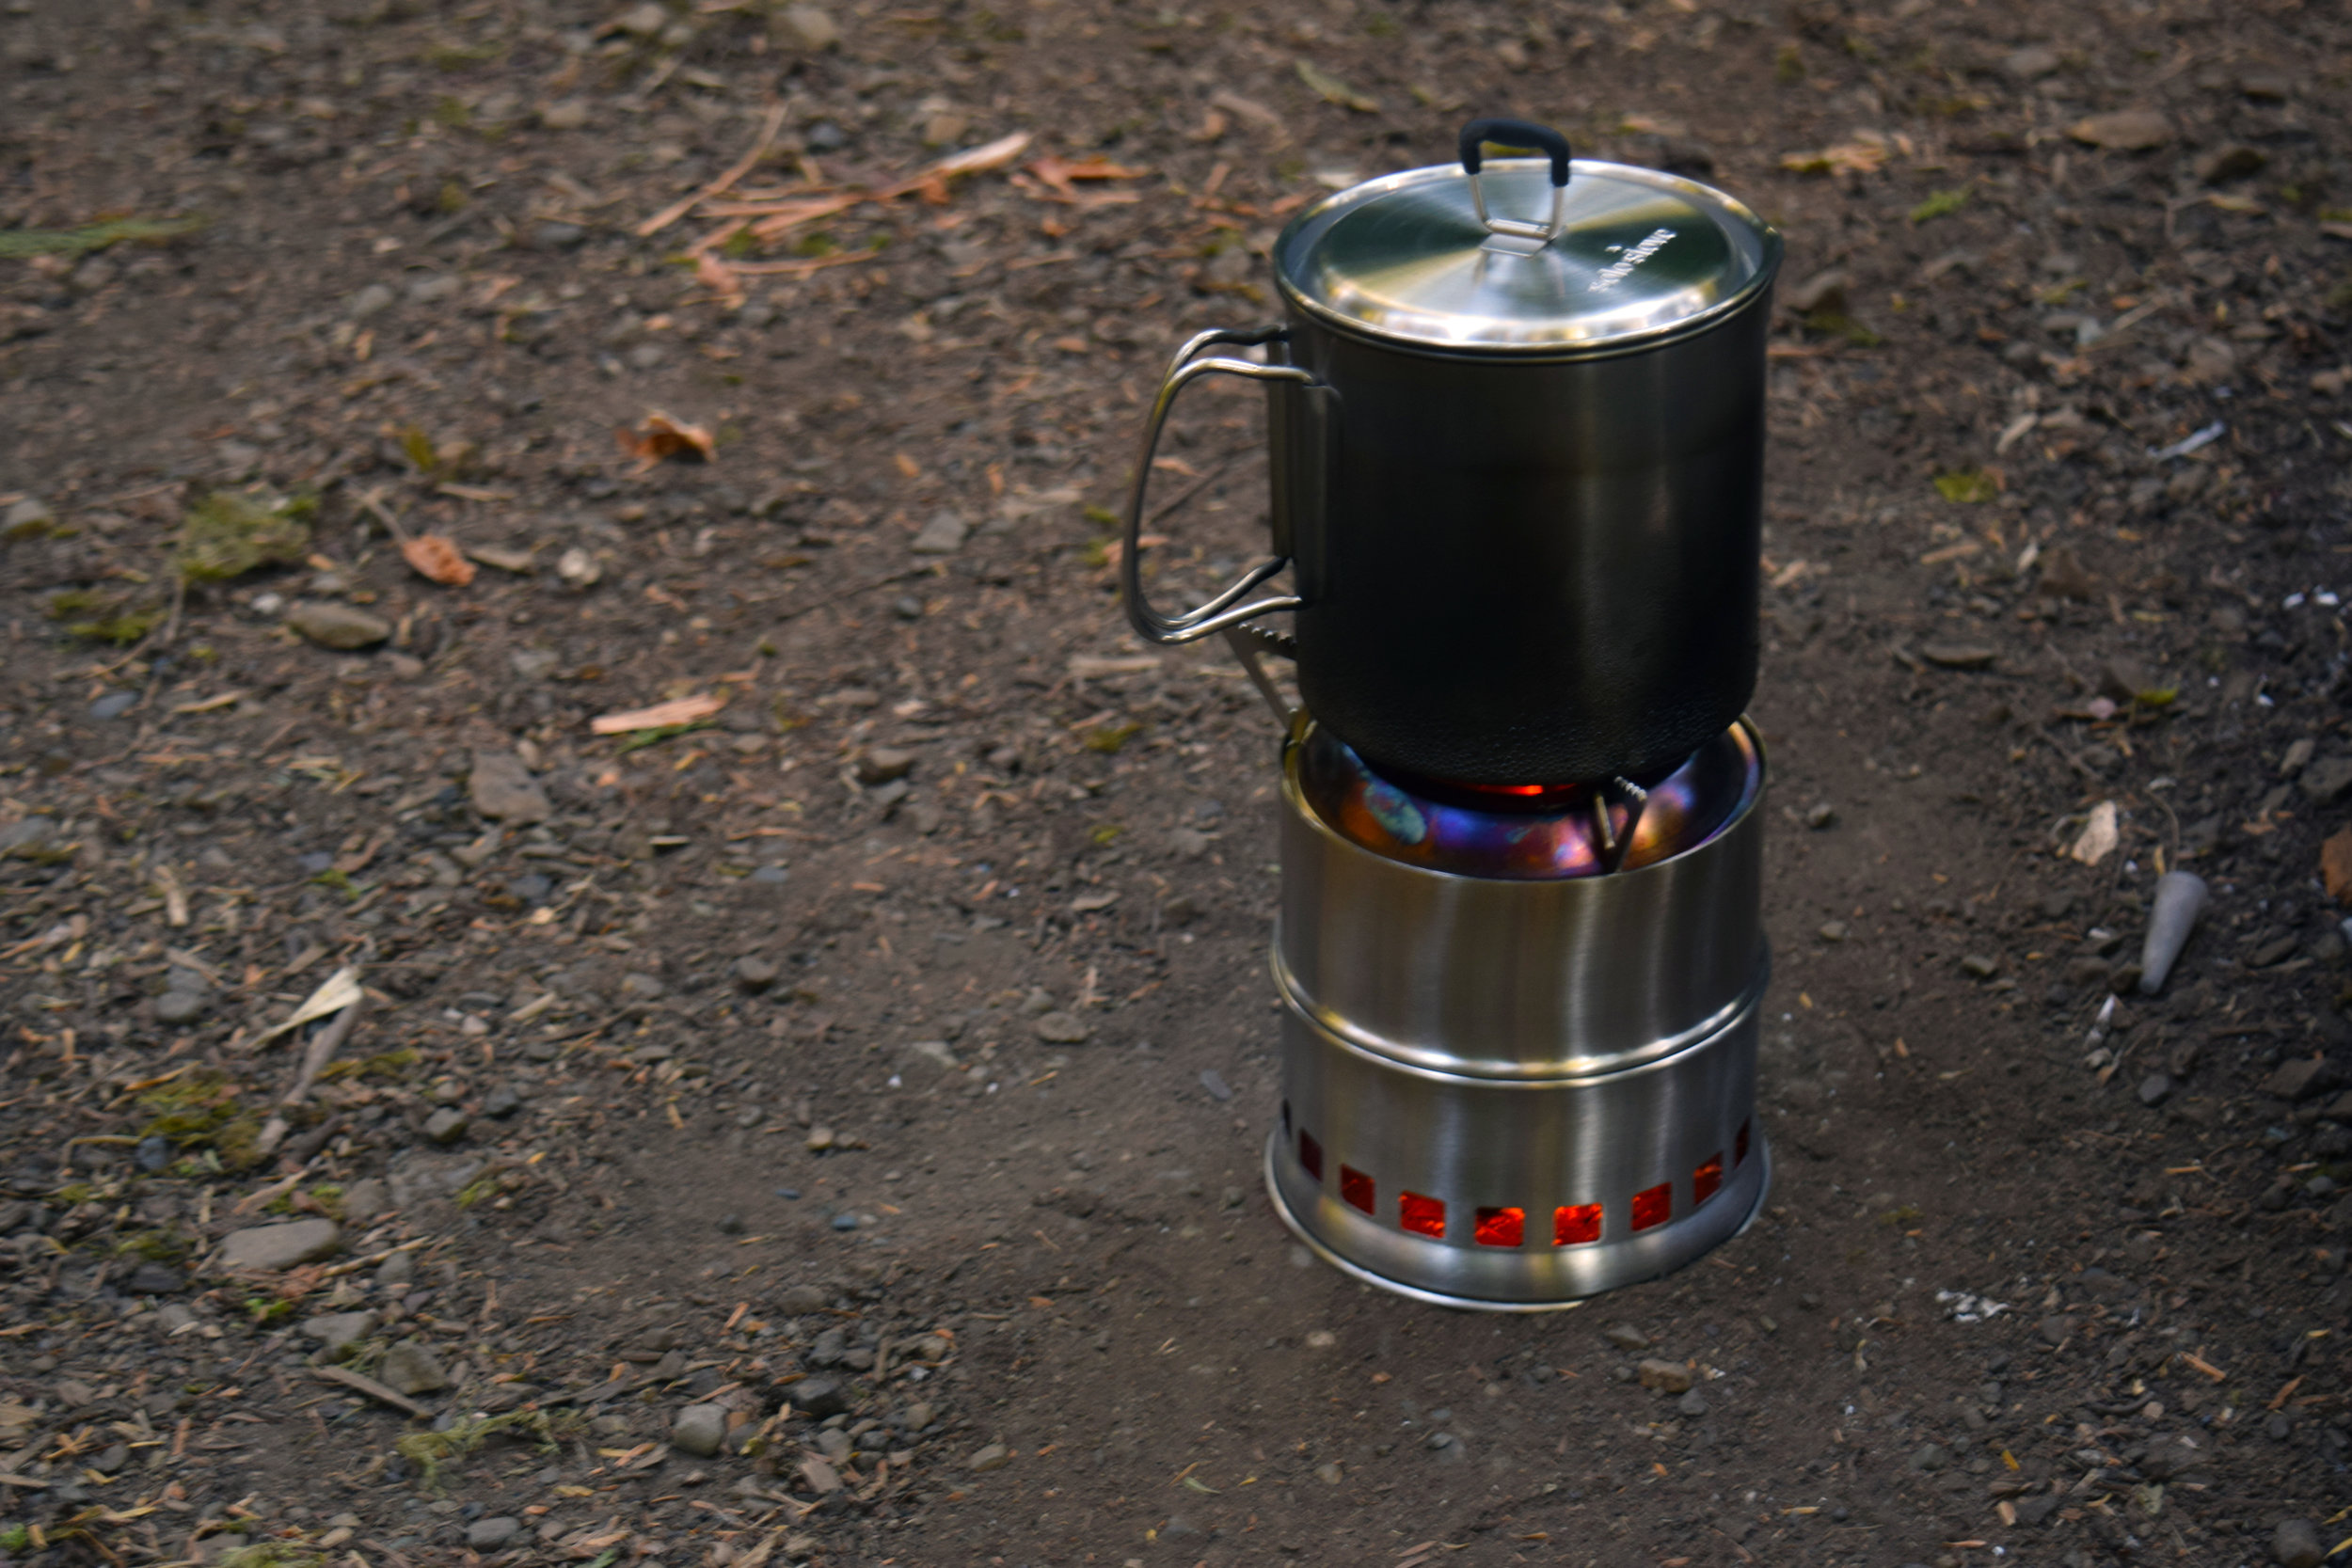 My wood burning stove actually boiled water! Fast too! I'll admit I was super skeptical at first.The only fuel I used was twigs I found in front of my tent.